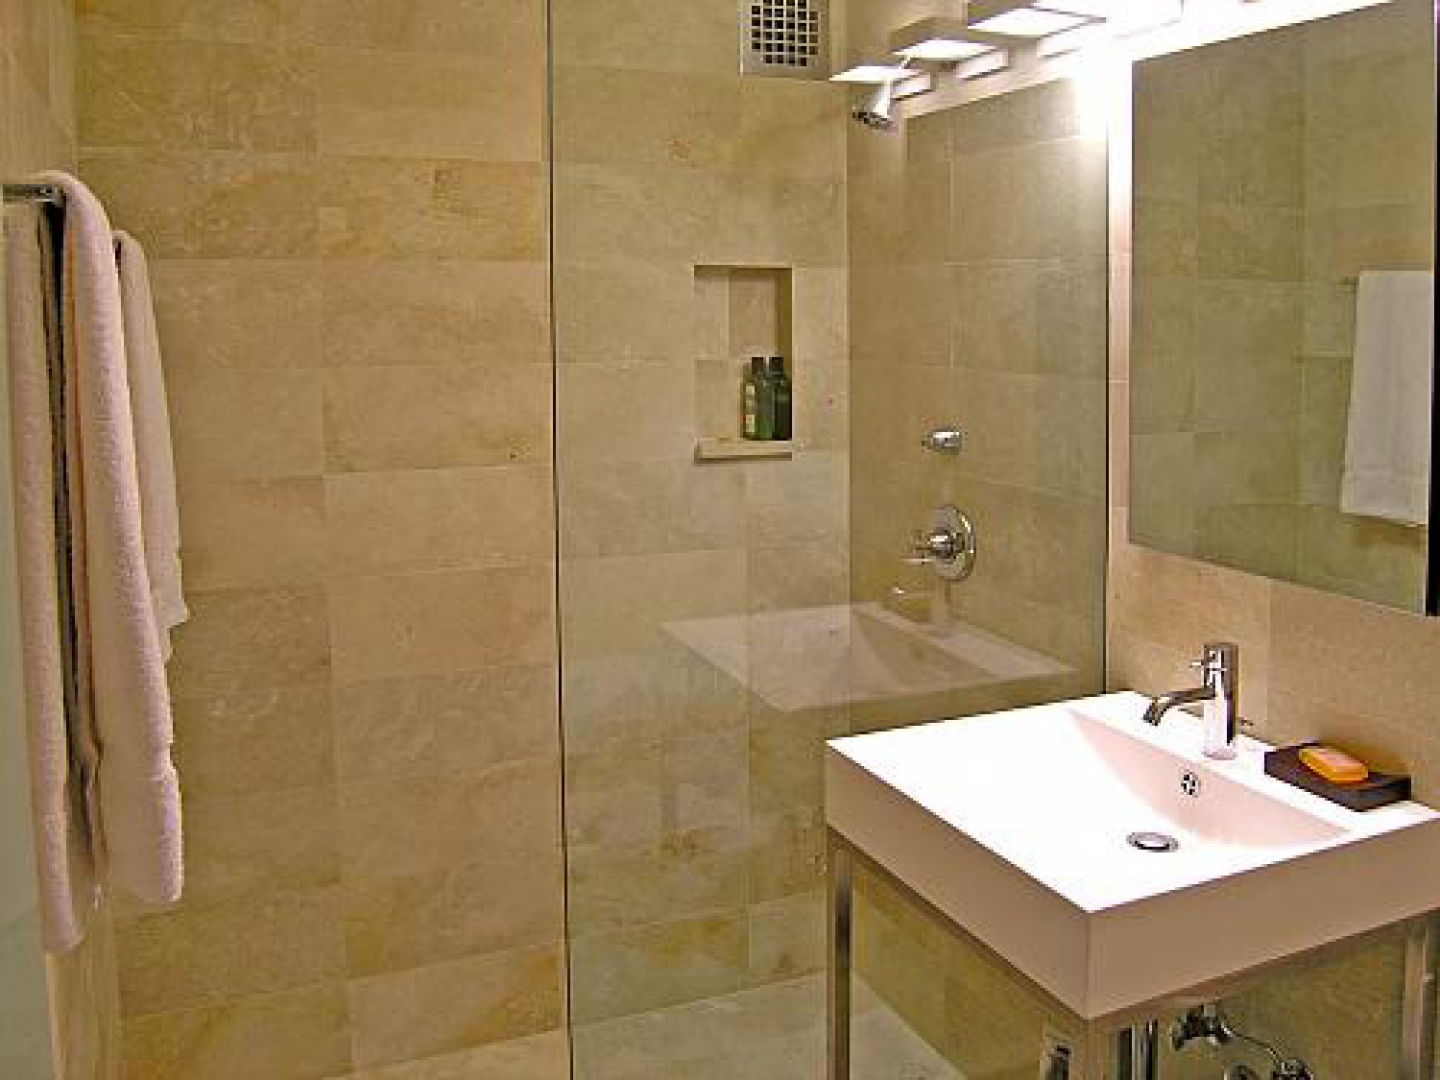 30 nice pictures and ideas bath and tile innovations Bathroom tile decorating ideas